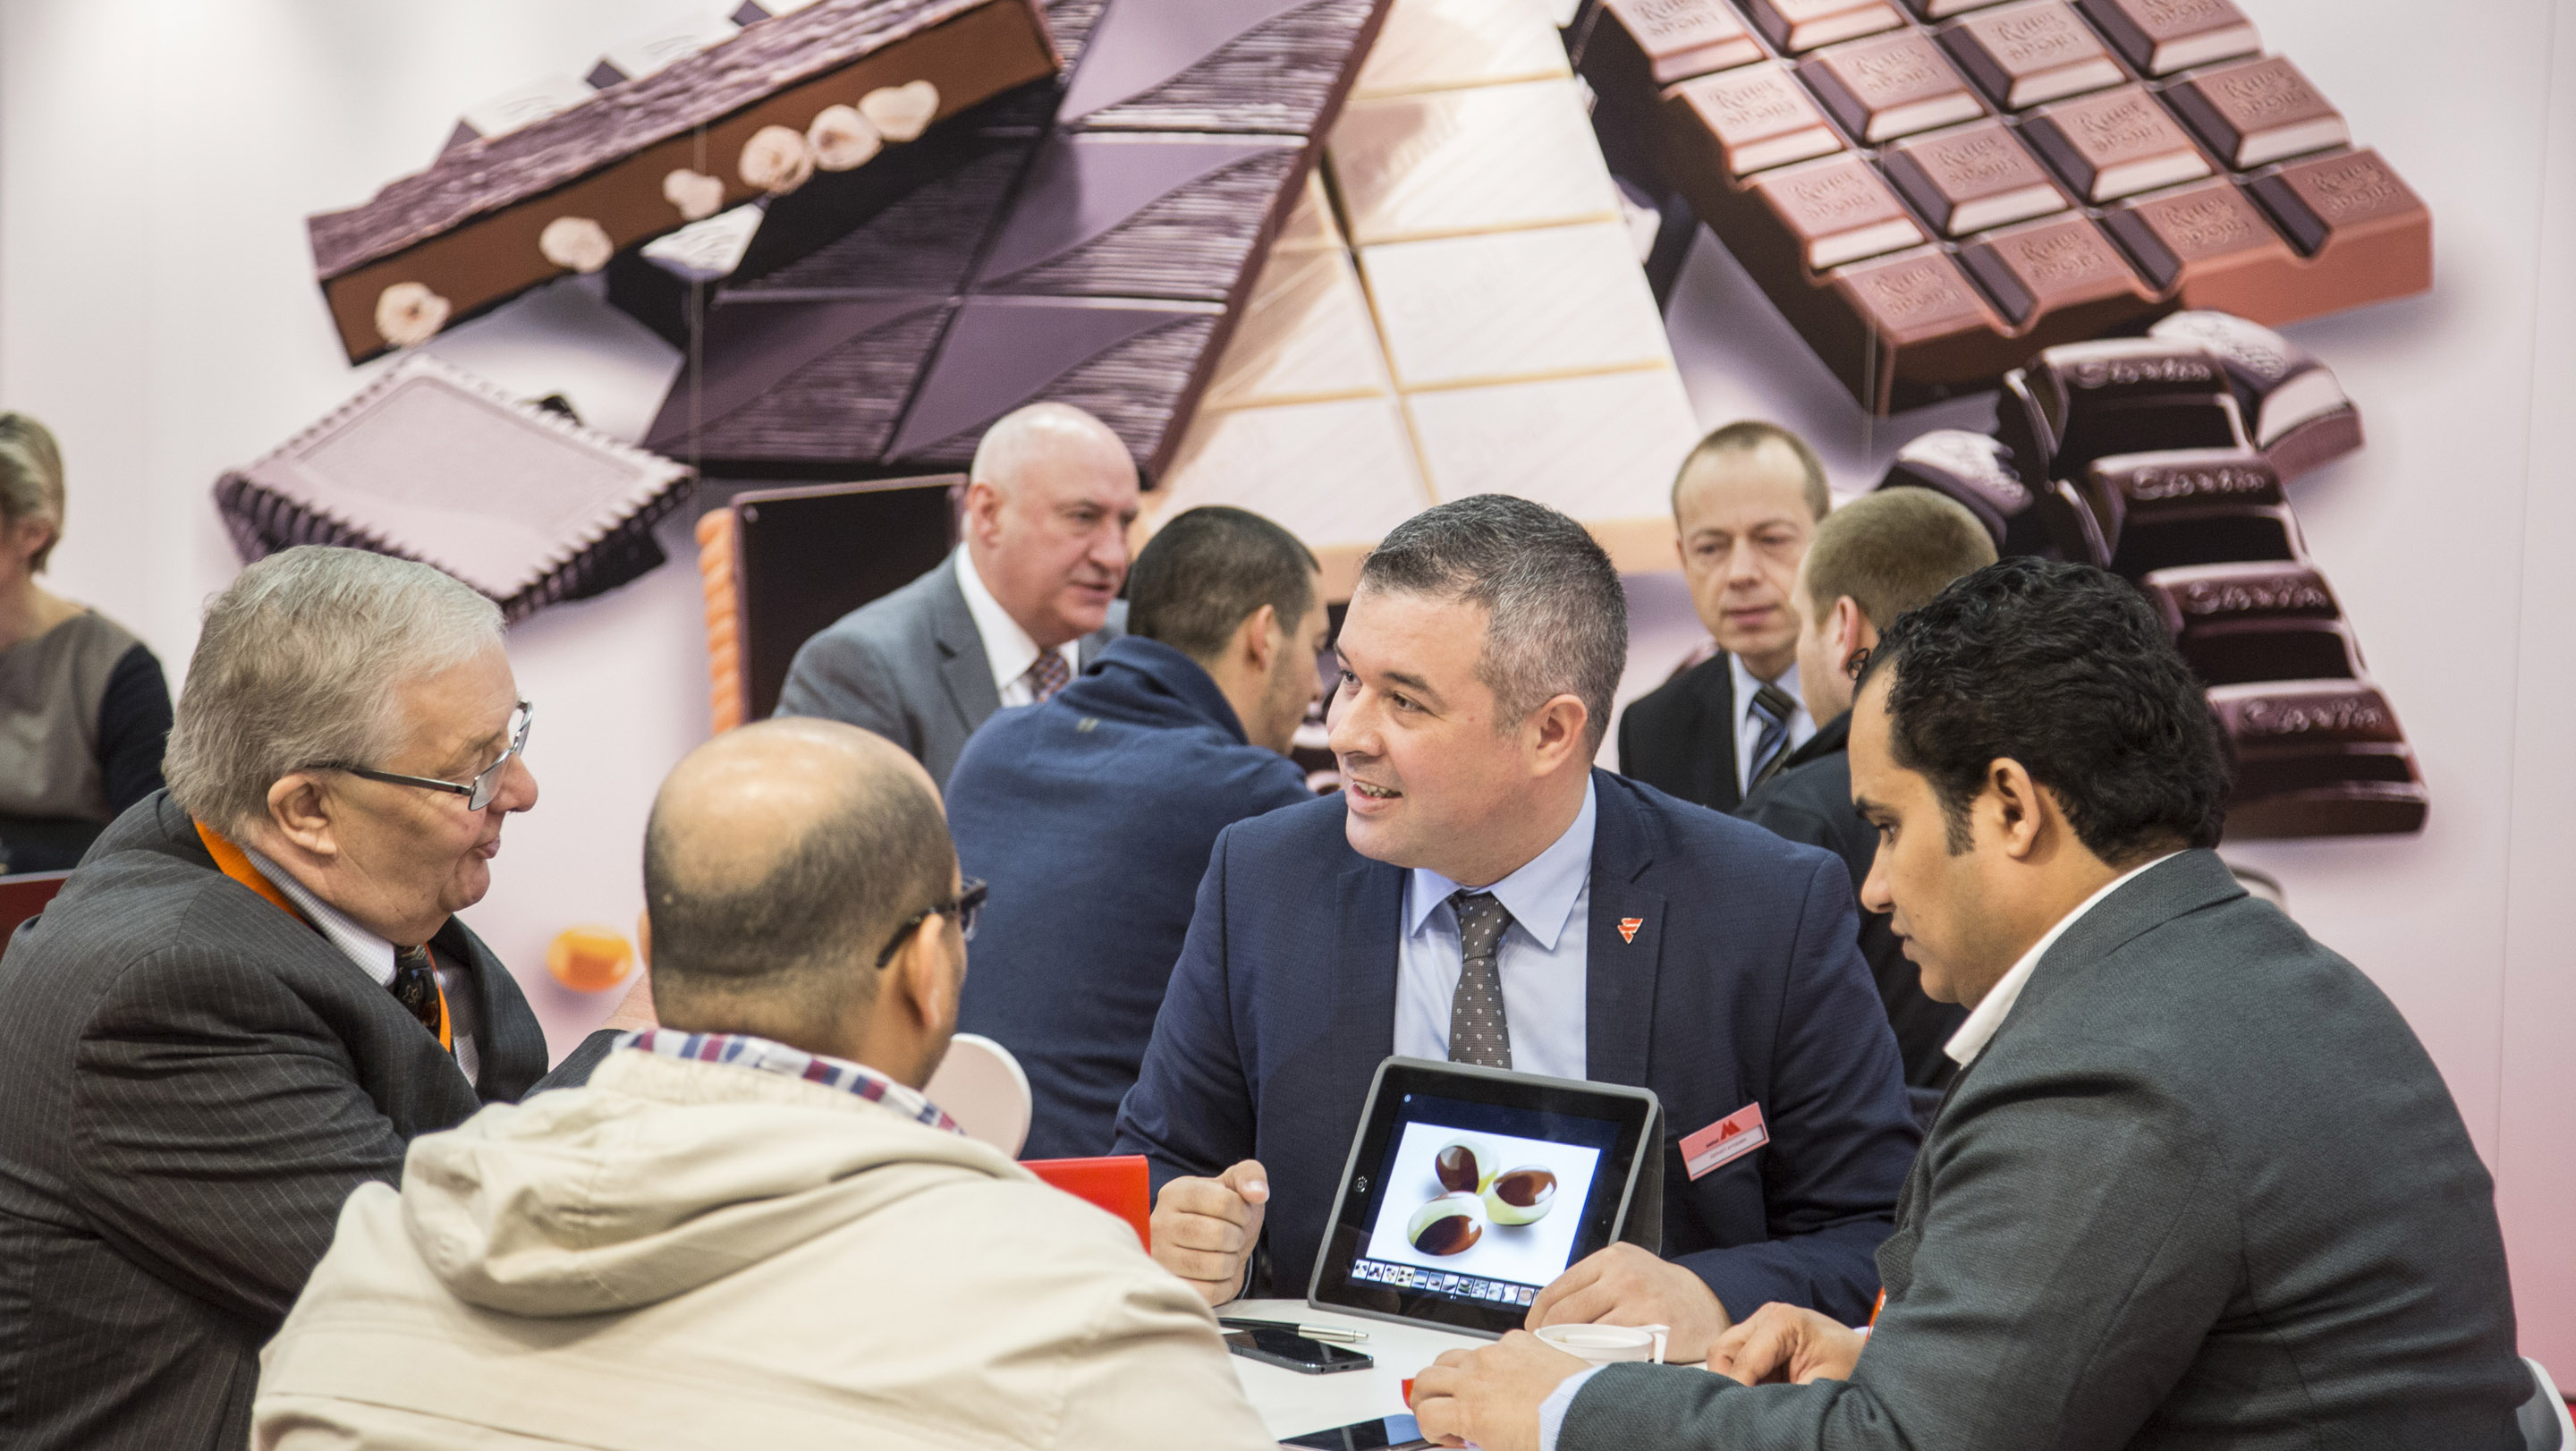 ProSweets 2016/ Stand: aasted, Halle 10.1